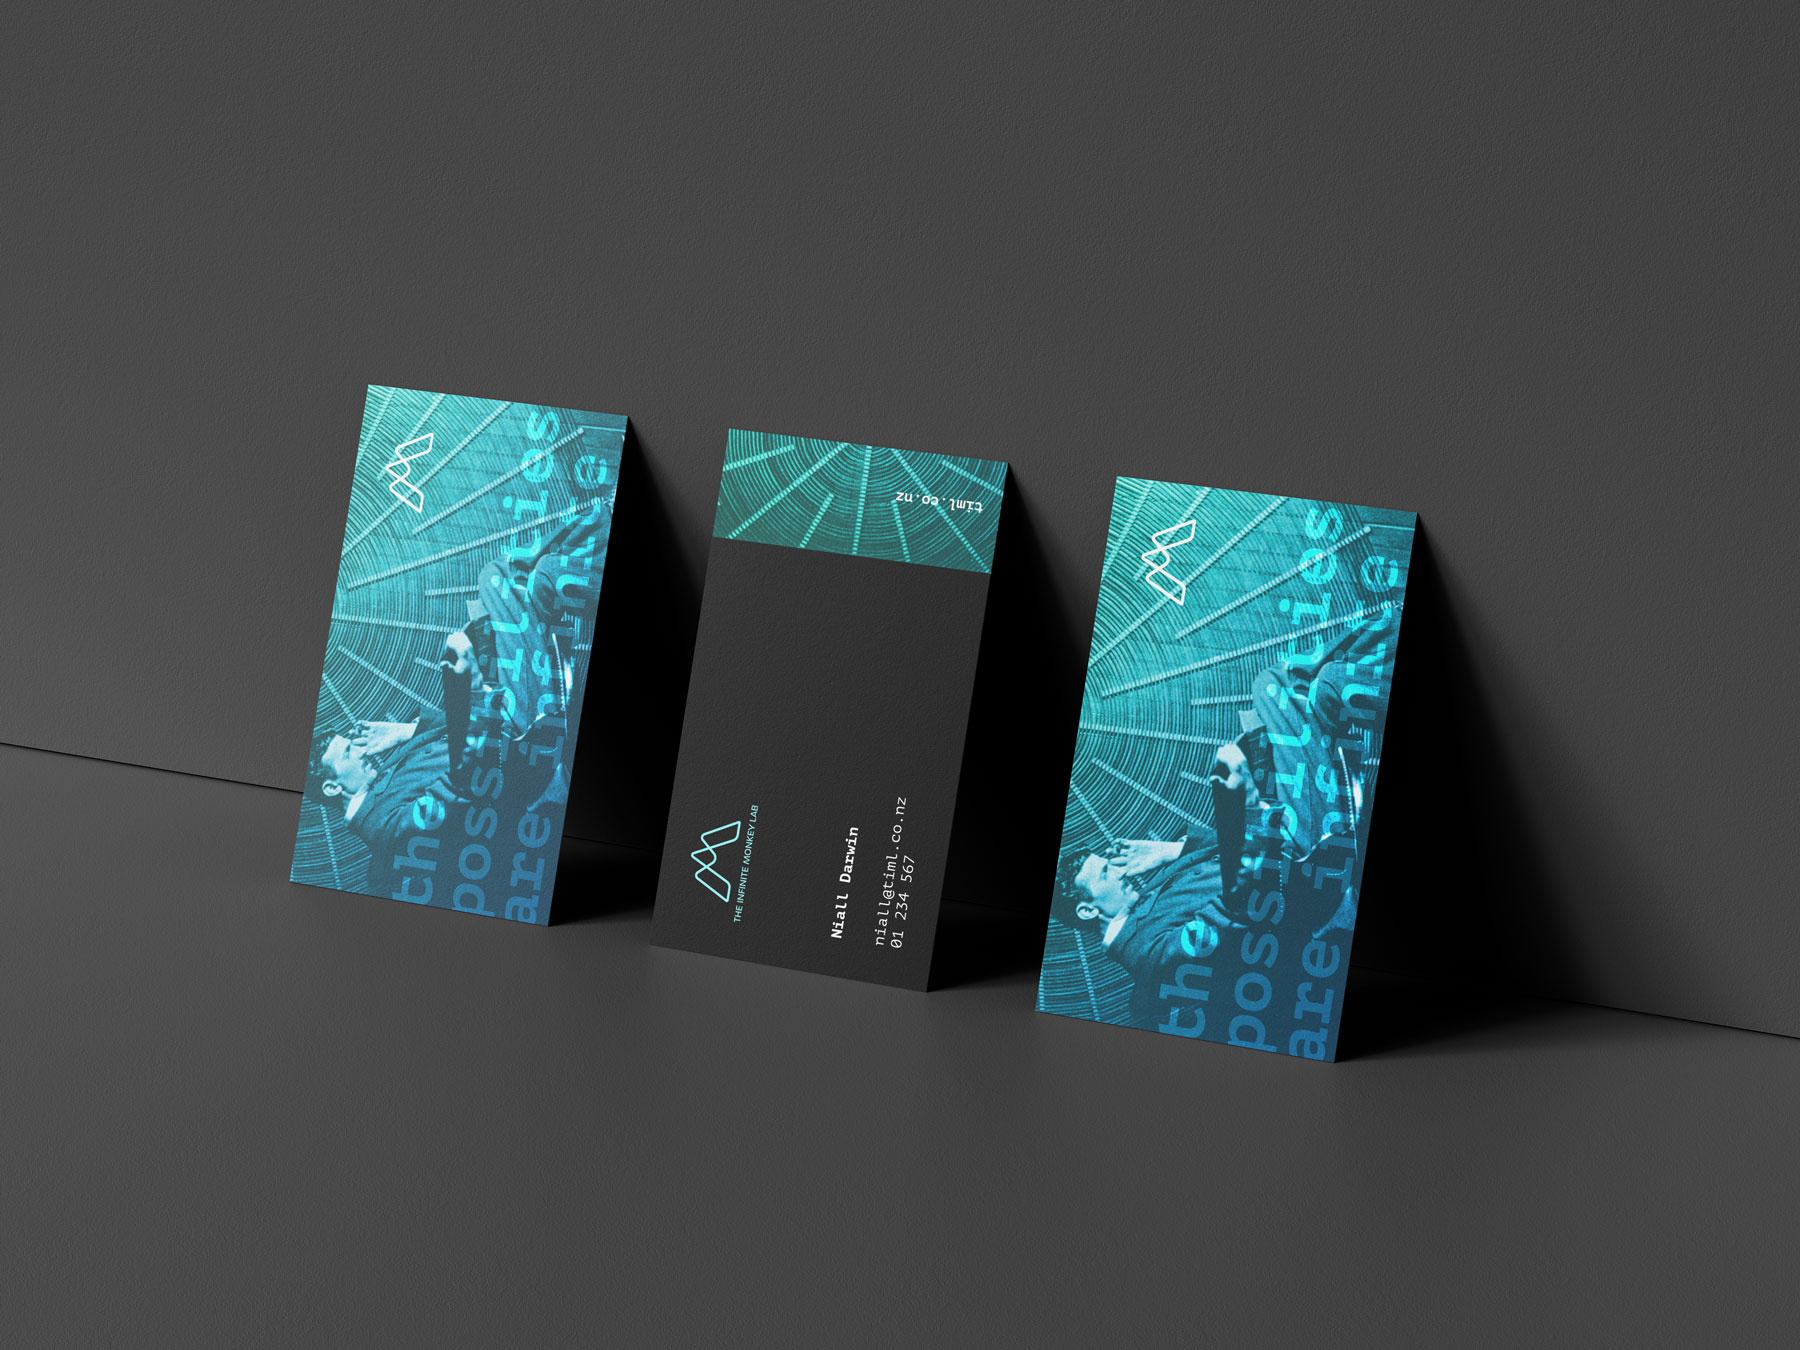 business cards showing The Infinite Monkey Lab brand identity applied to their touch points